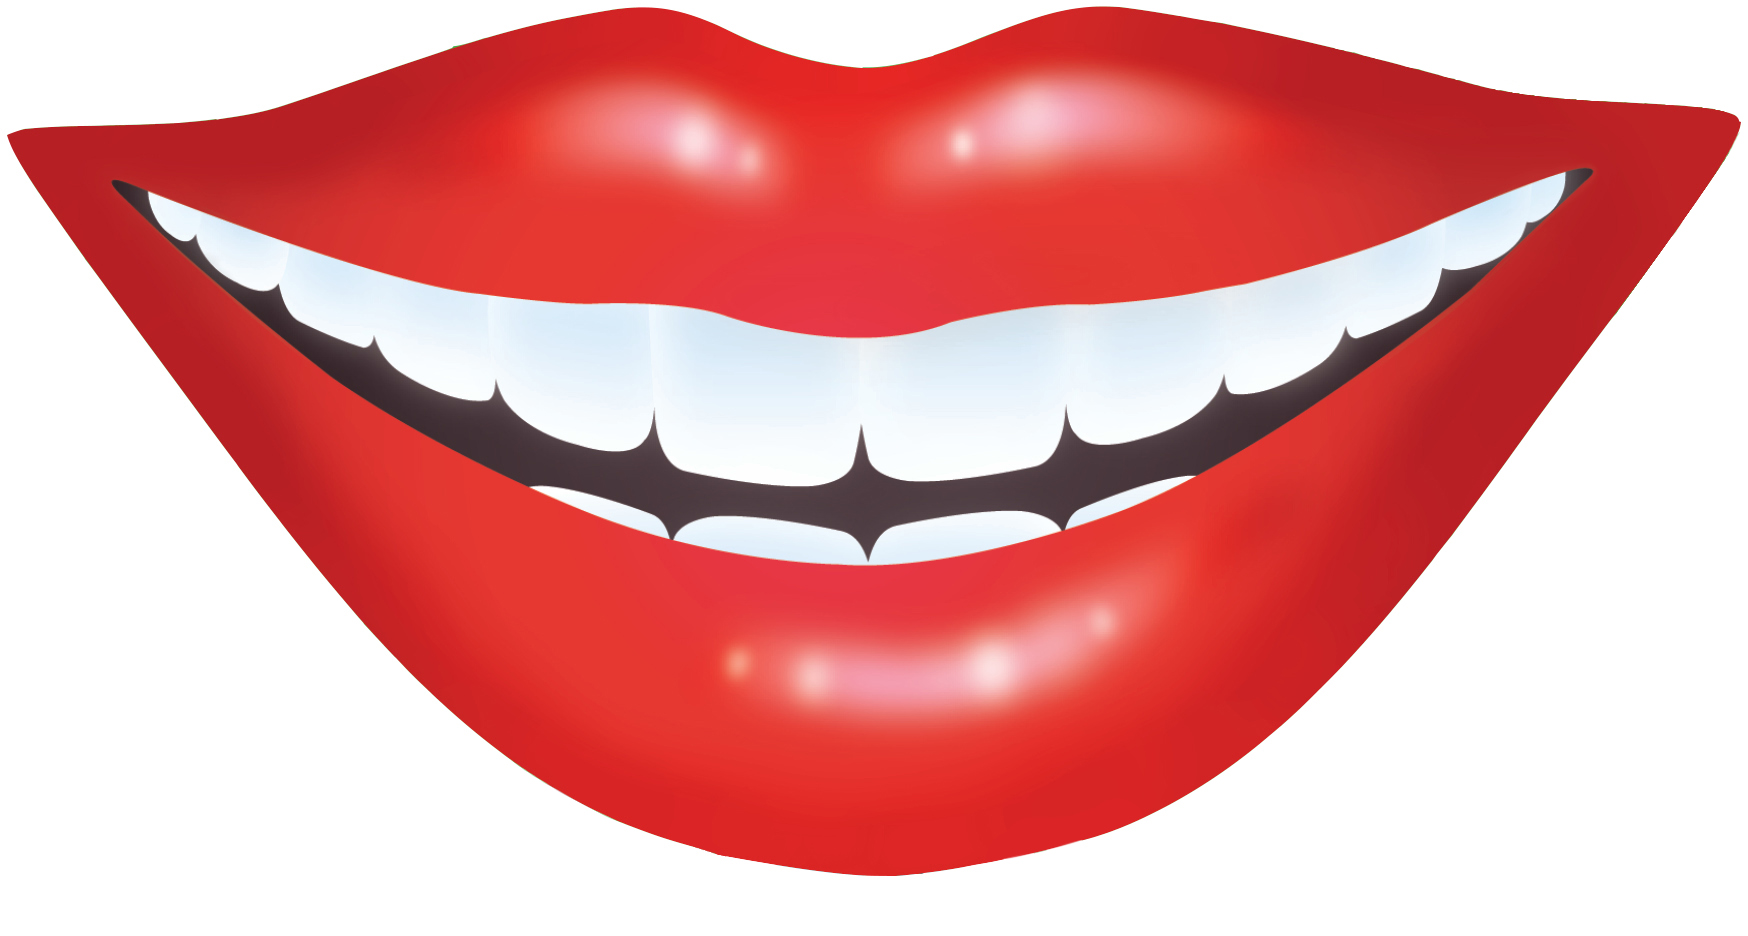 Smile Lips PNG - 45667